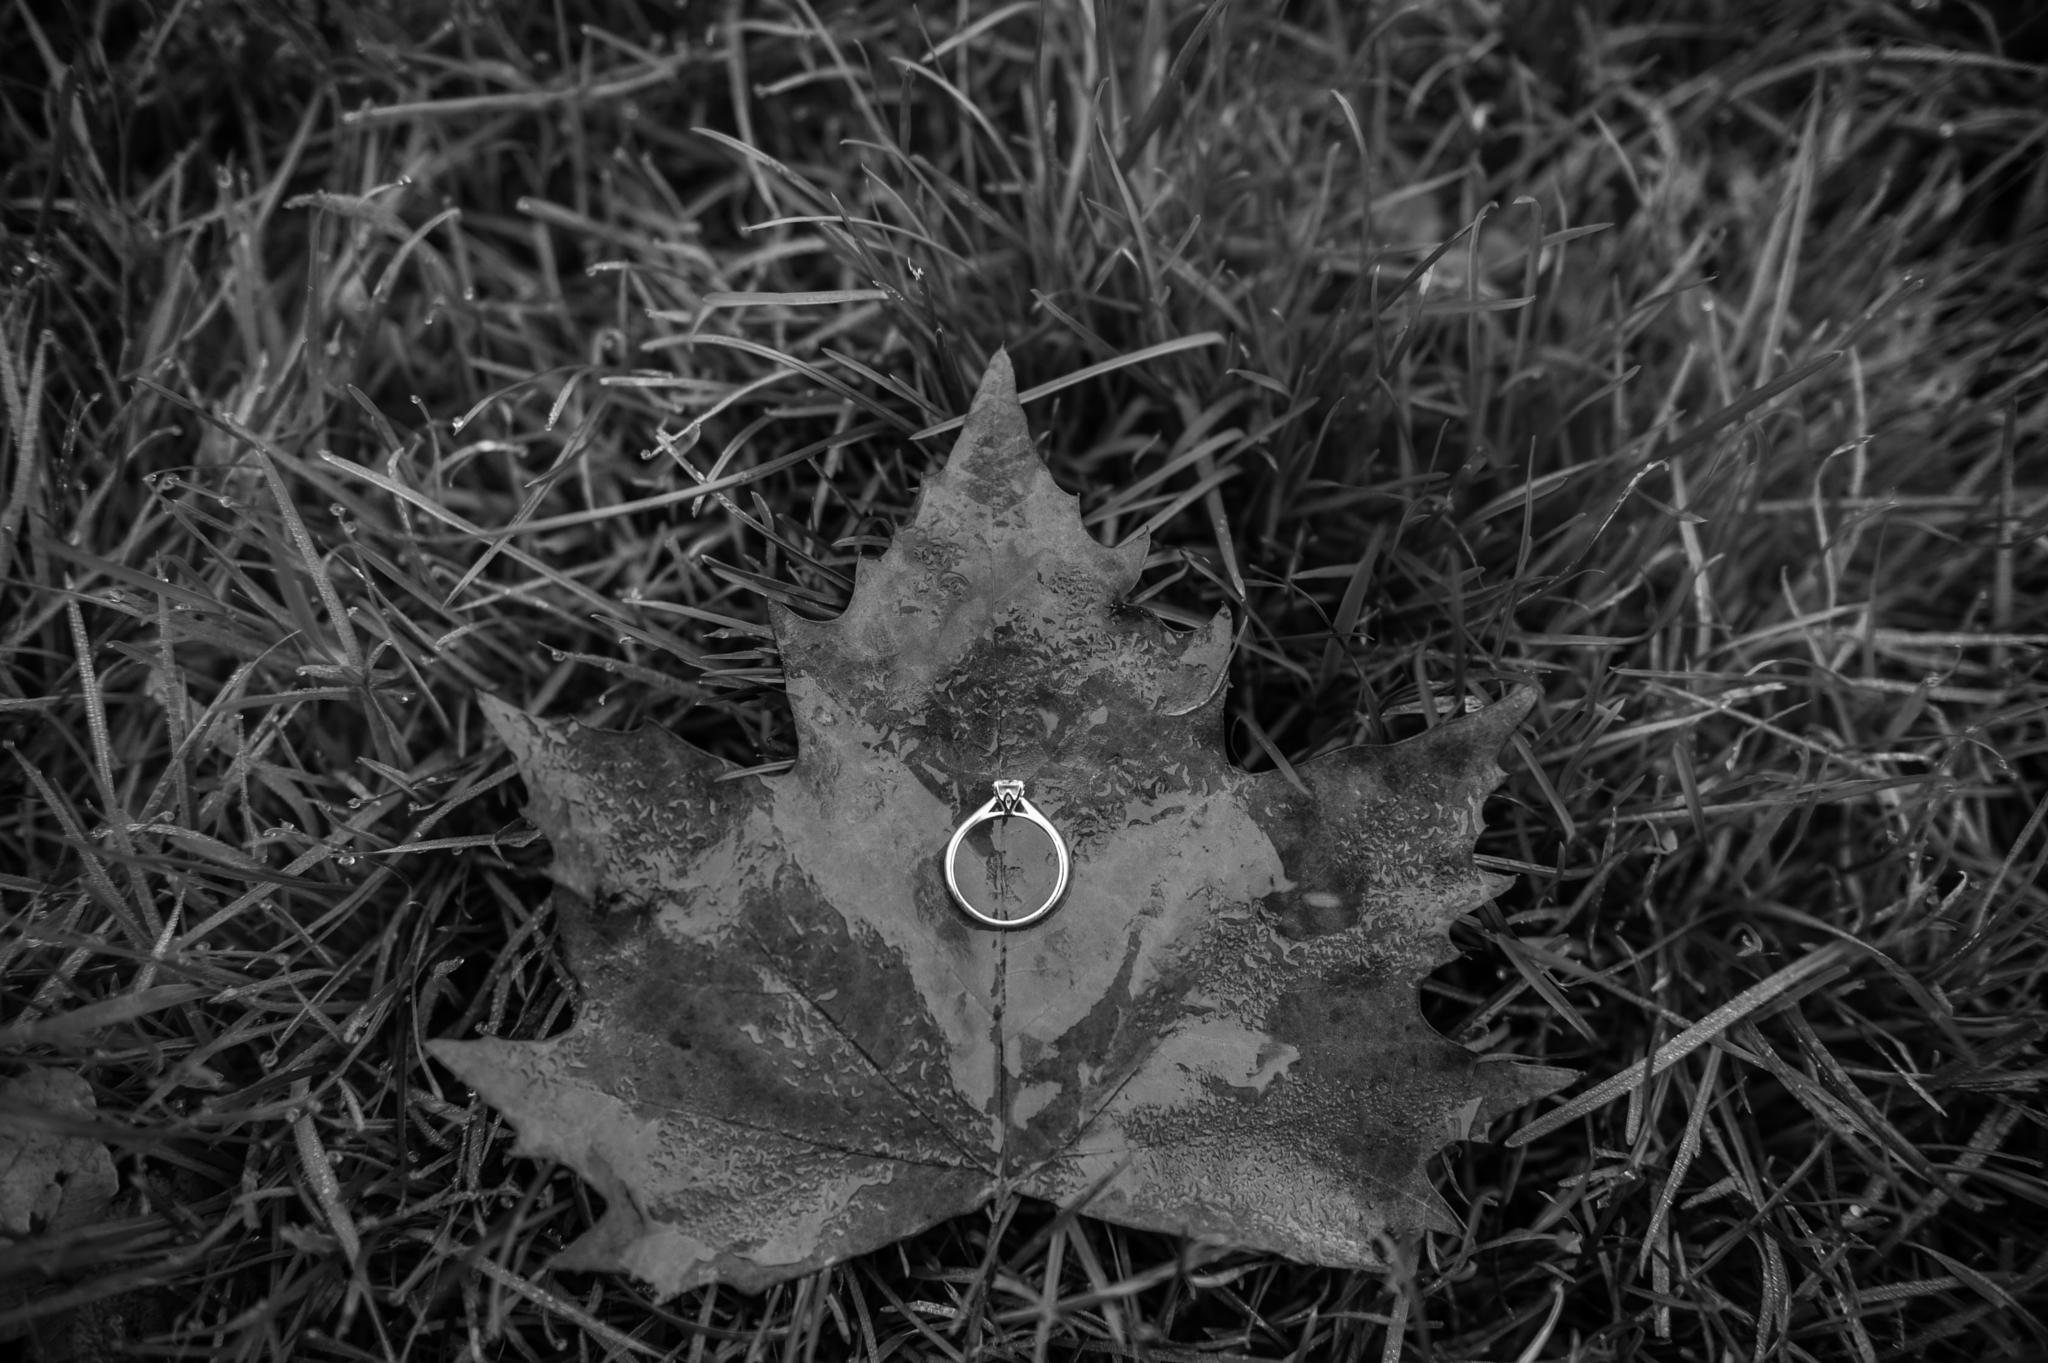 the ring by matteolomonte